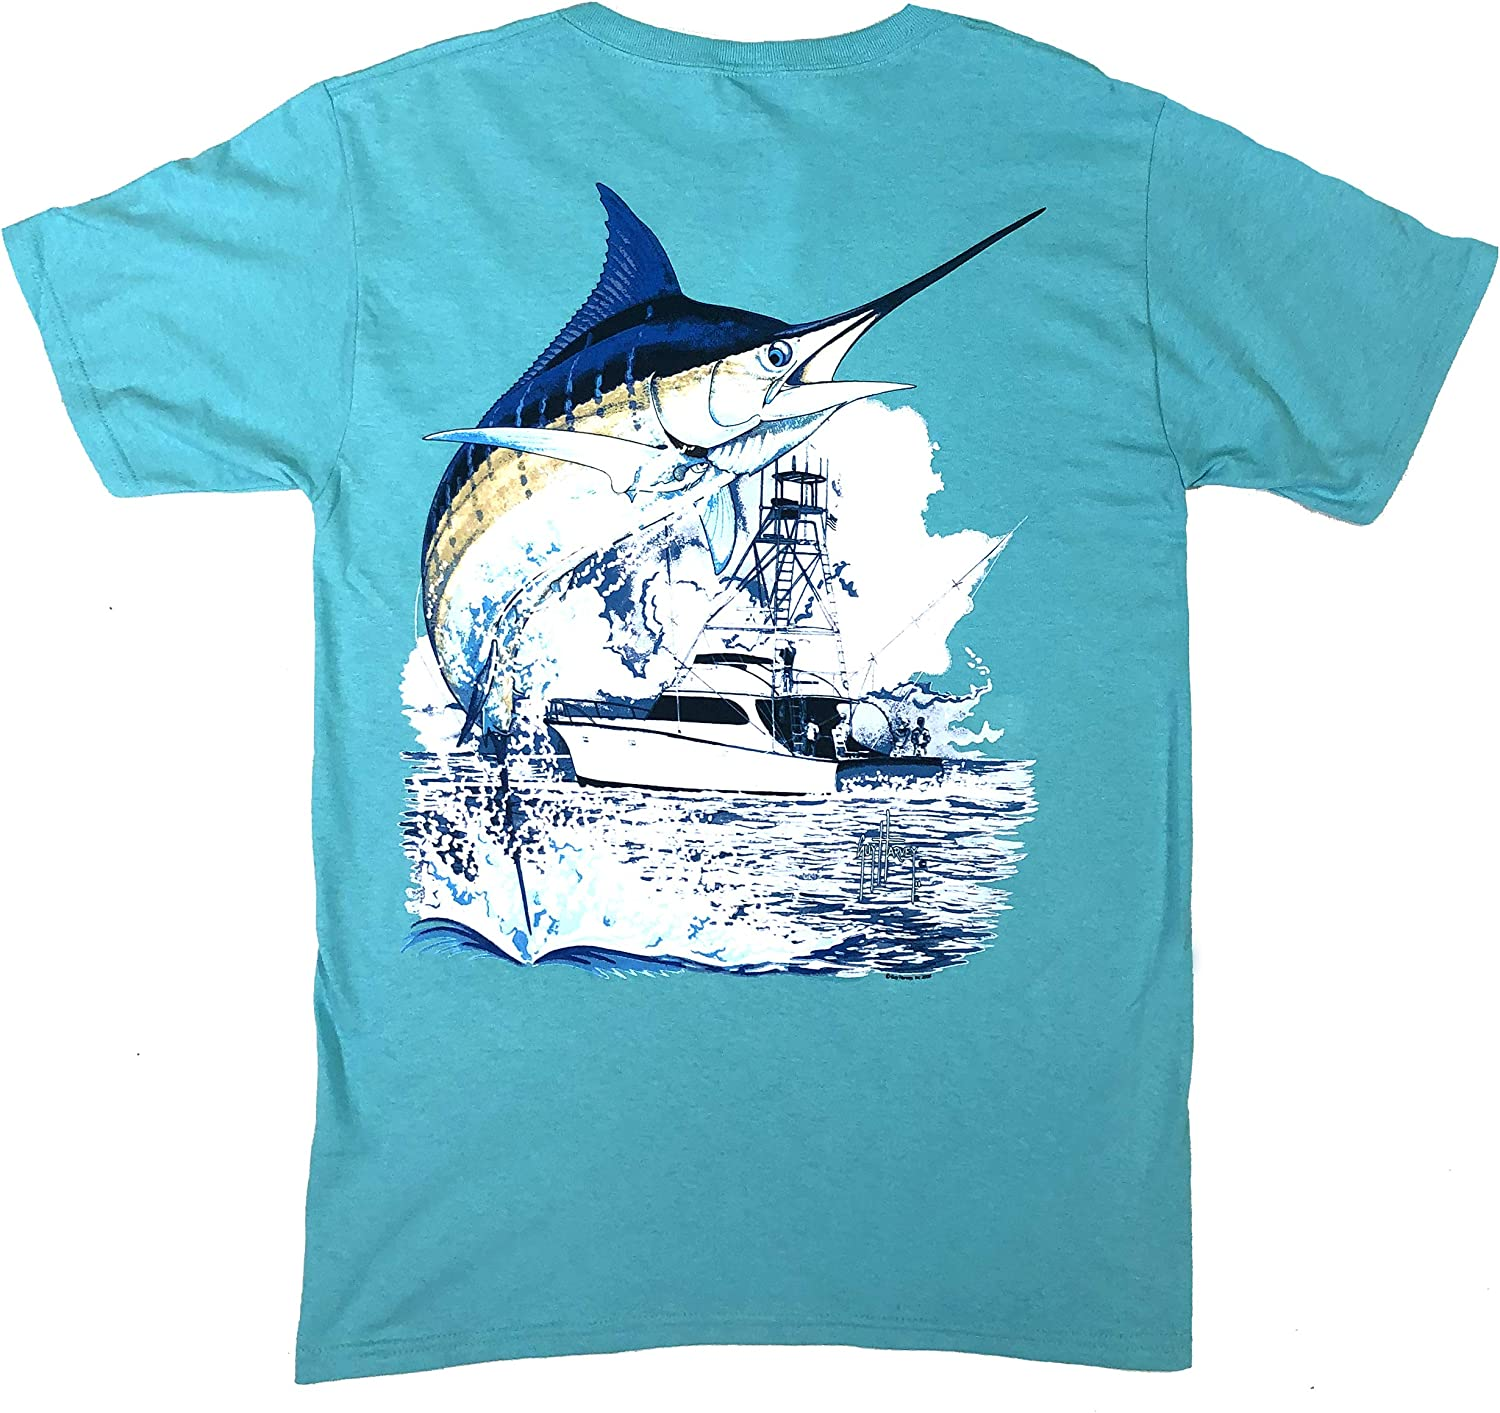 Top 8 Guy Harvey Cotton Shirts Shark